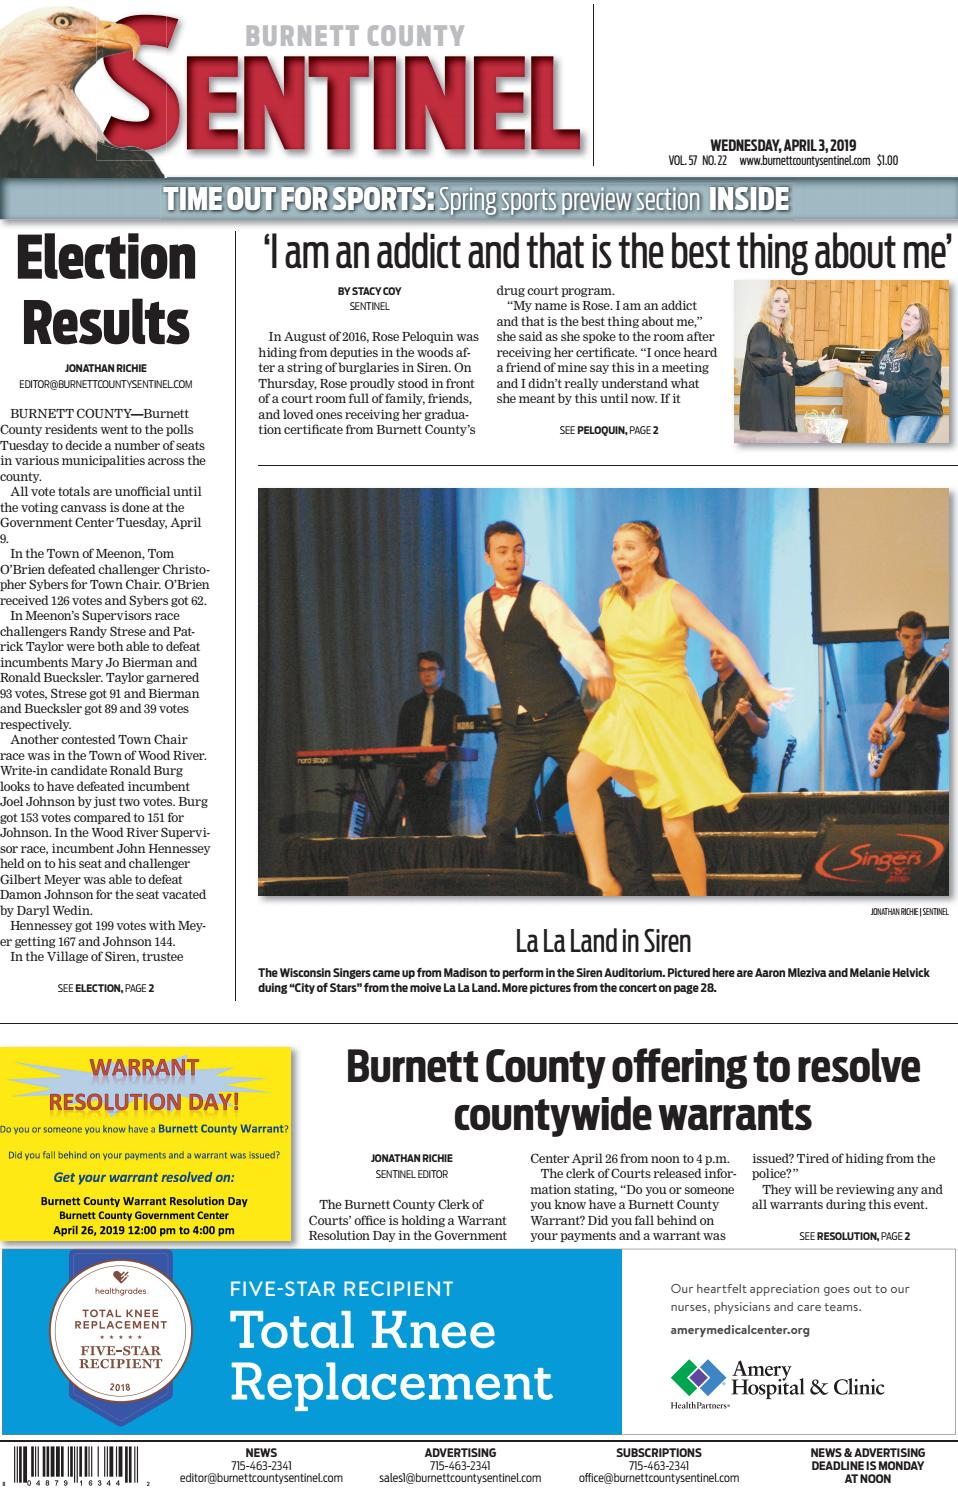 The Burnett County Sentinel 04-03-2019 by Burnett County